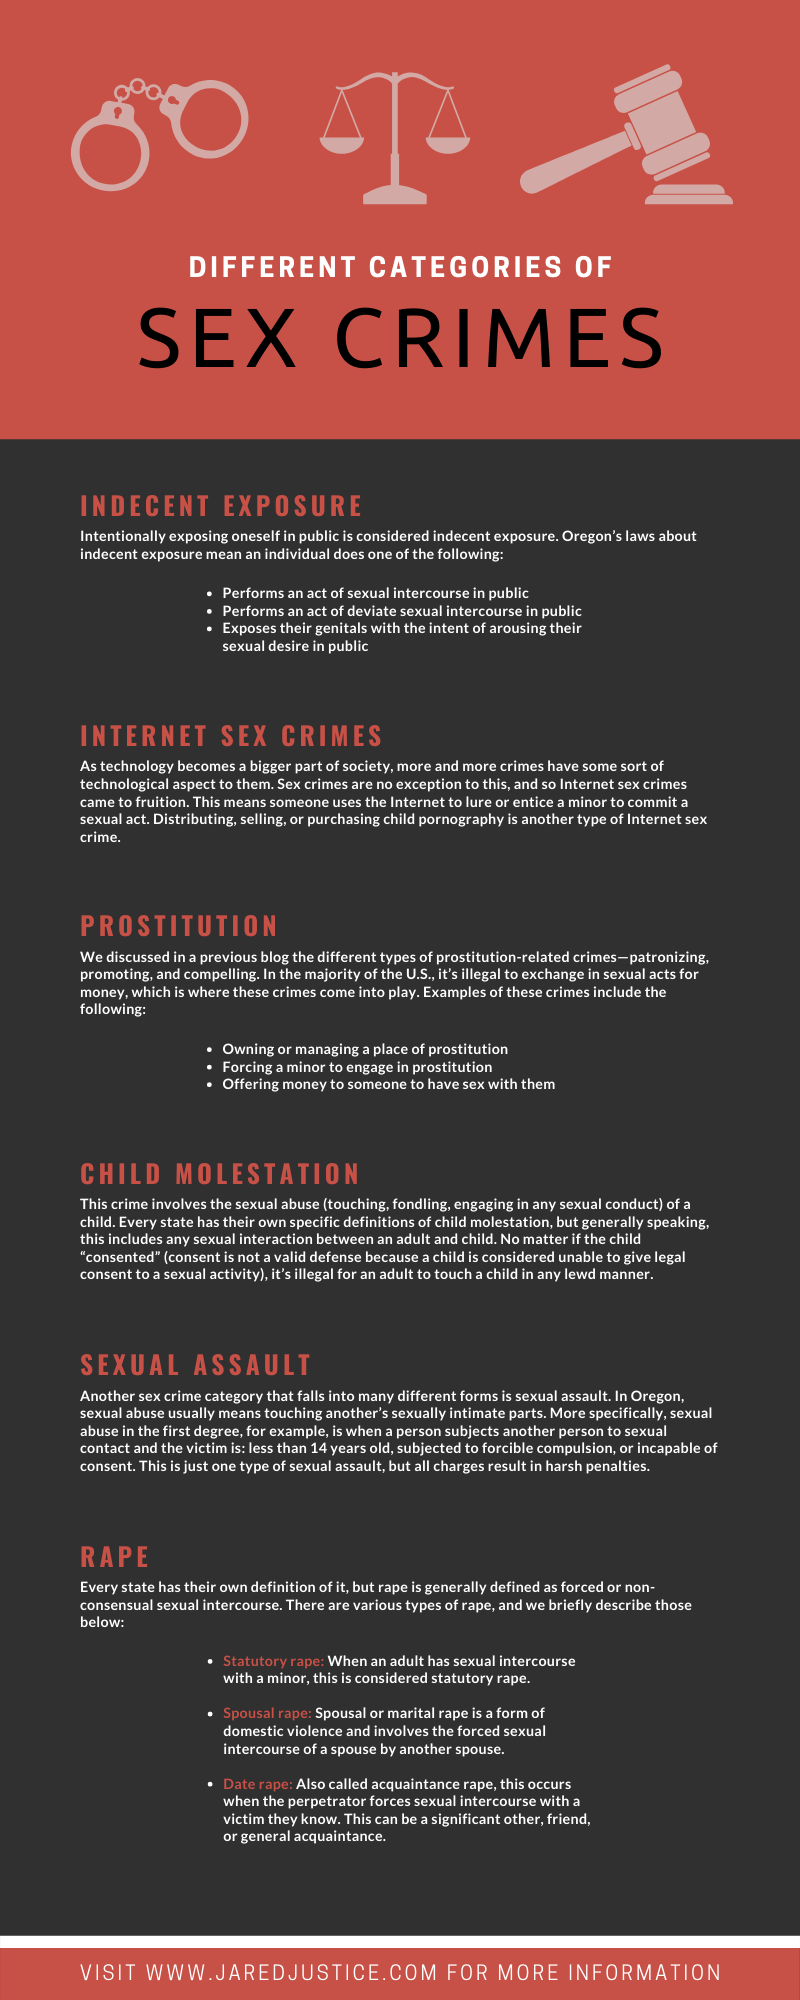 Categories of Sex Crimes